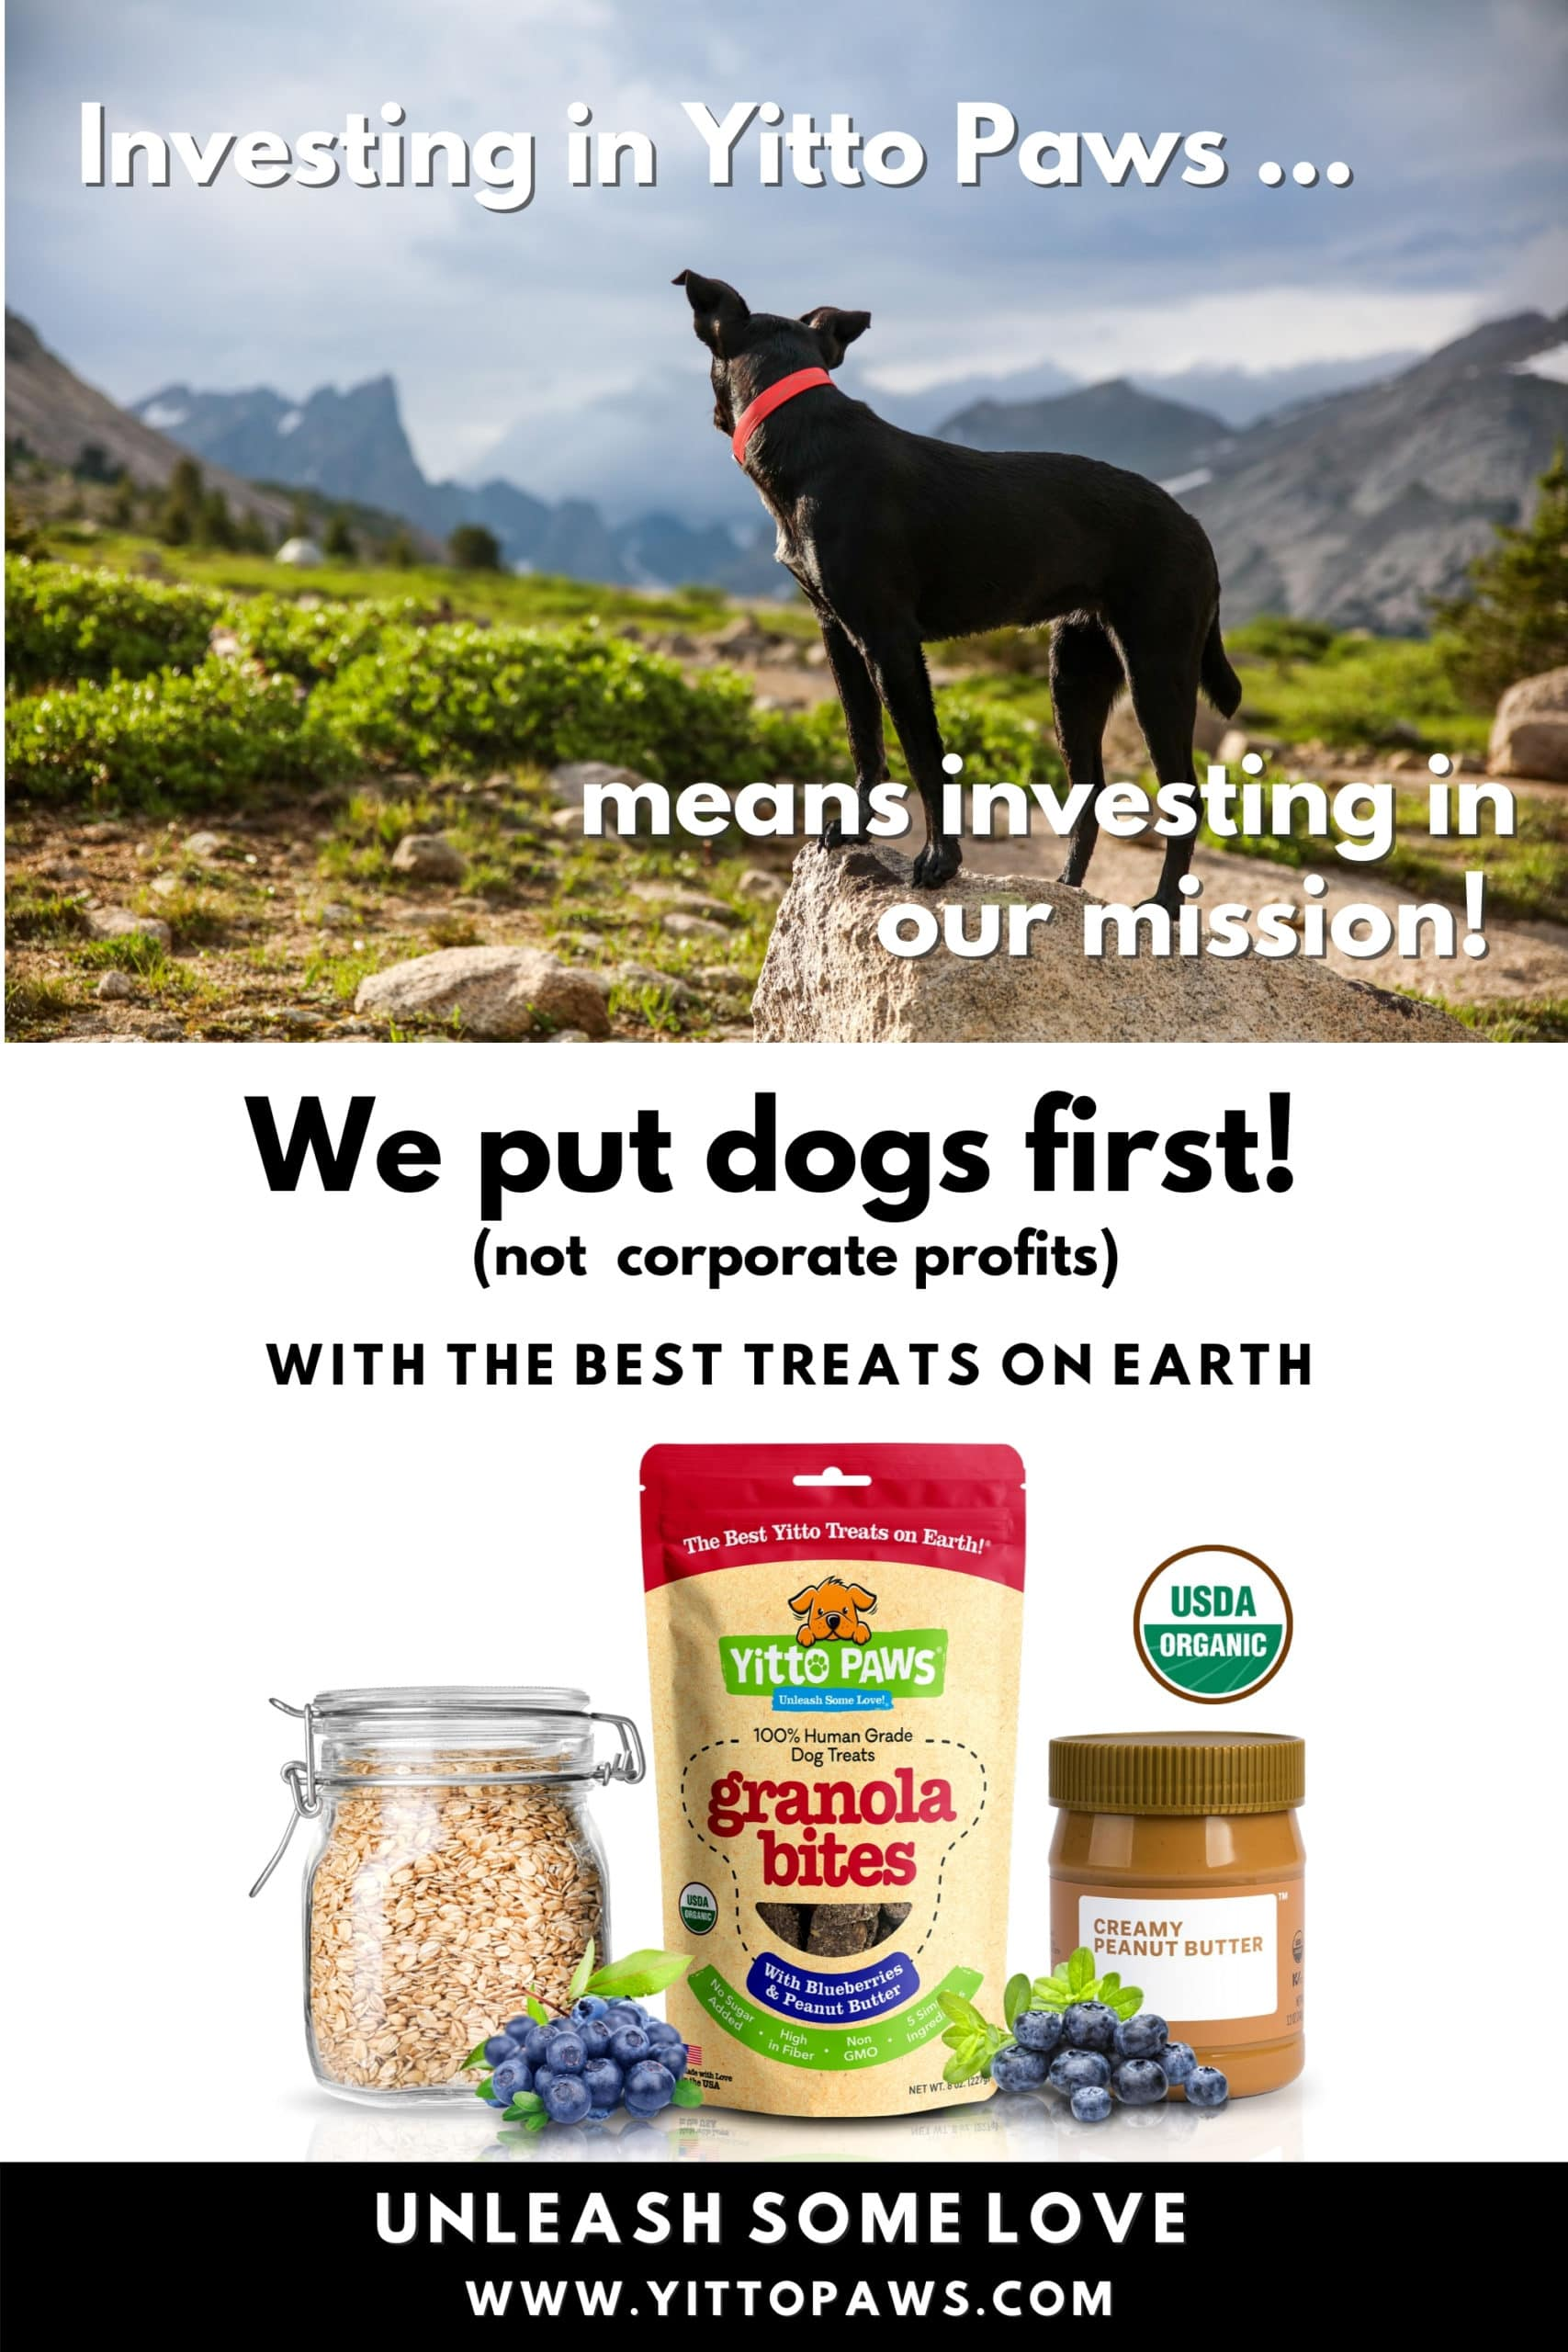 Investing in Yitto Paws mean investing in our mission to put dogs first!